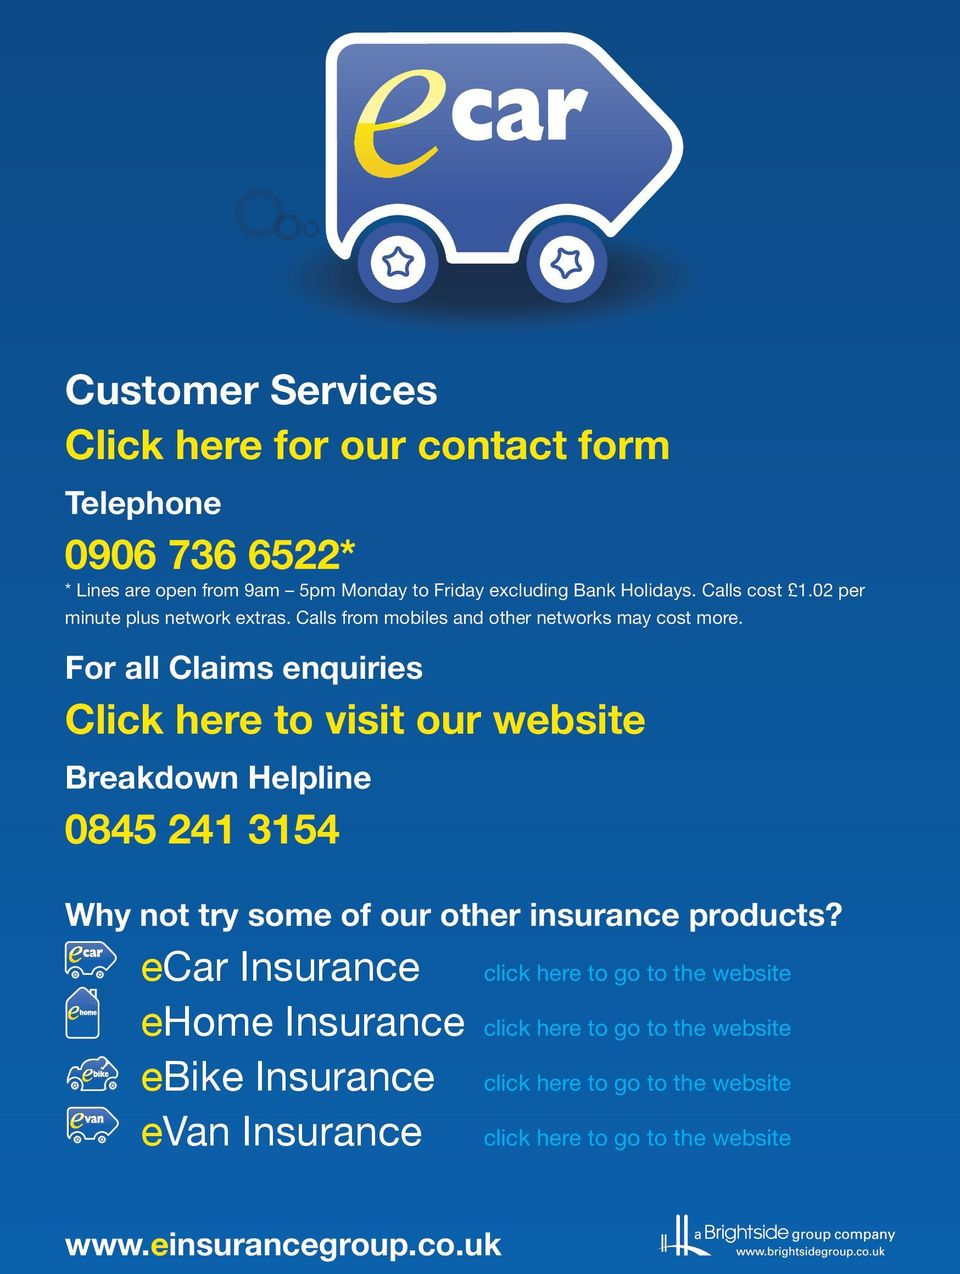 For all Claims enquiries Click here to visit our website Breakdown Helpline 0845 241 3154 Why not try some of our other insurance products?